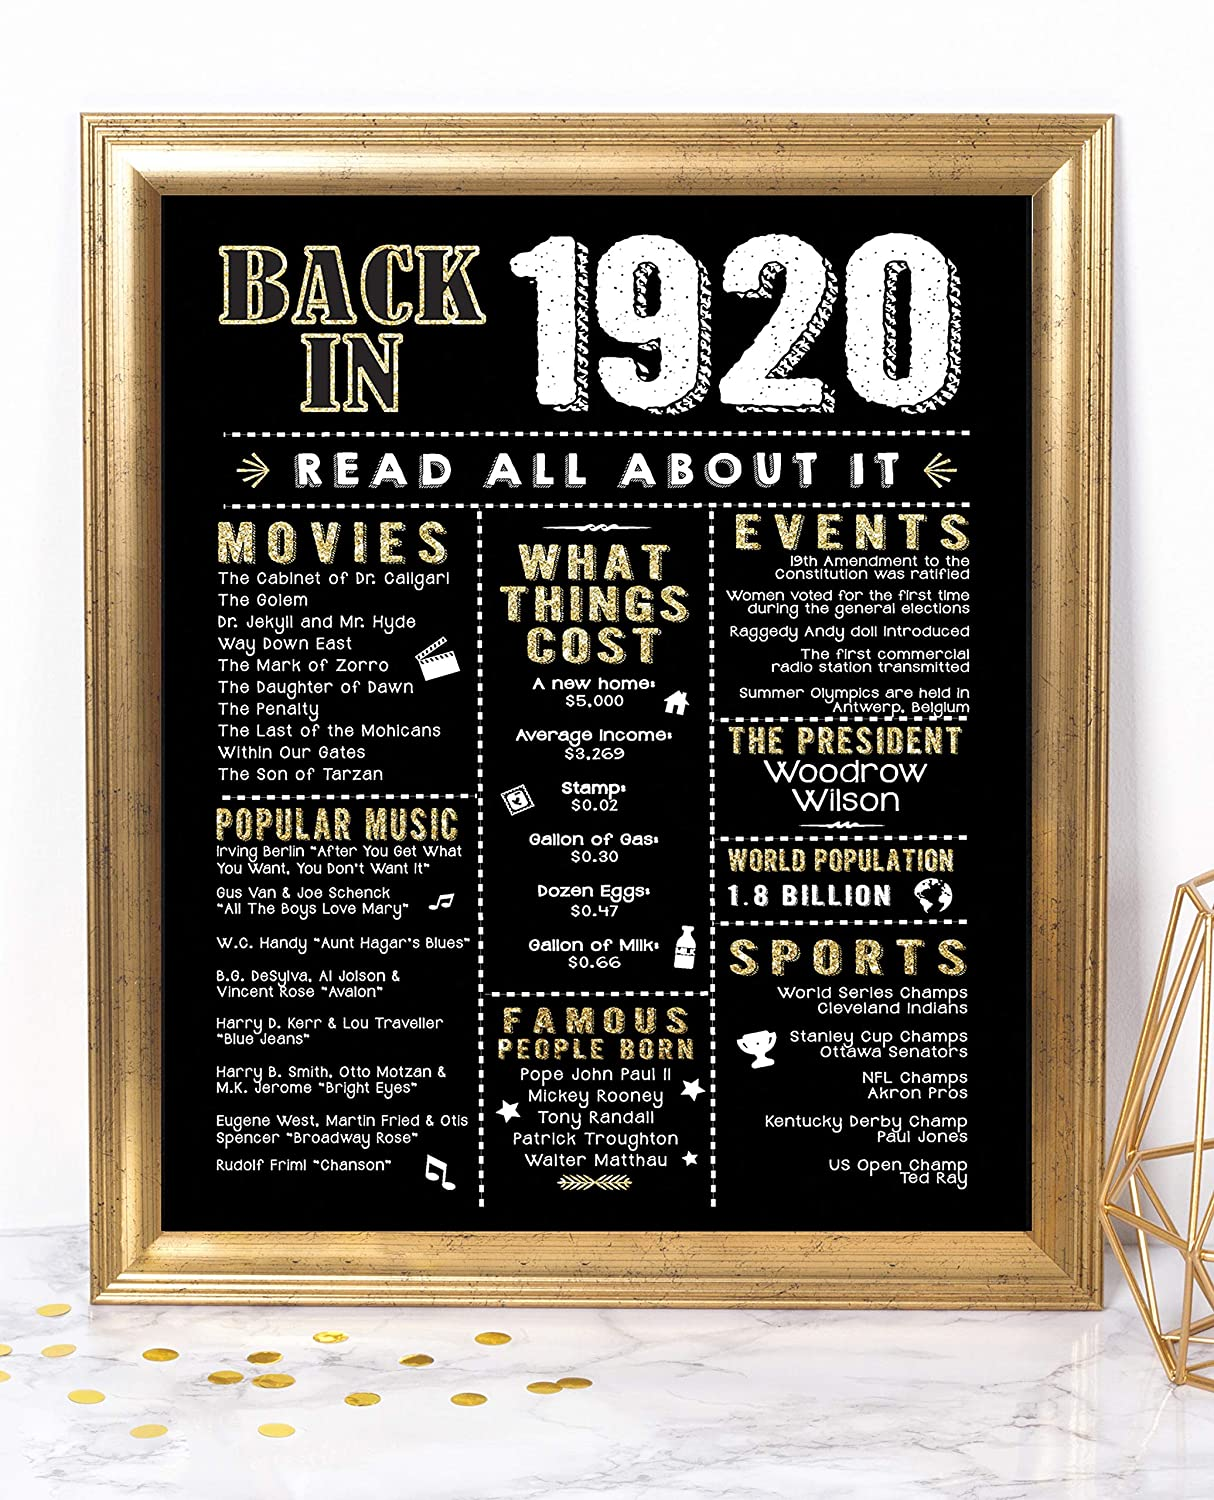 Katie Doodle 1920s Great Gatsby Roaring 20s Party Decorations Supplies Decor Centerpiece | Includes Back in 1920 Sign [Unframed], Black and Gold